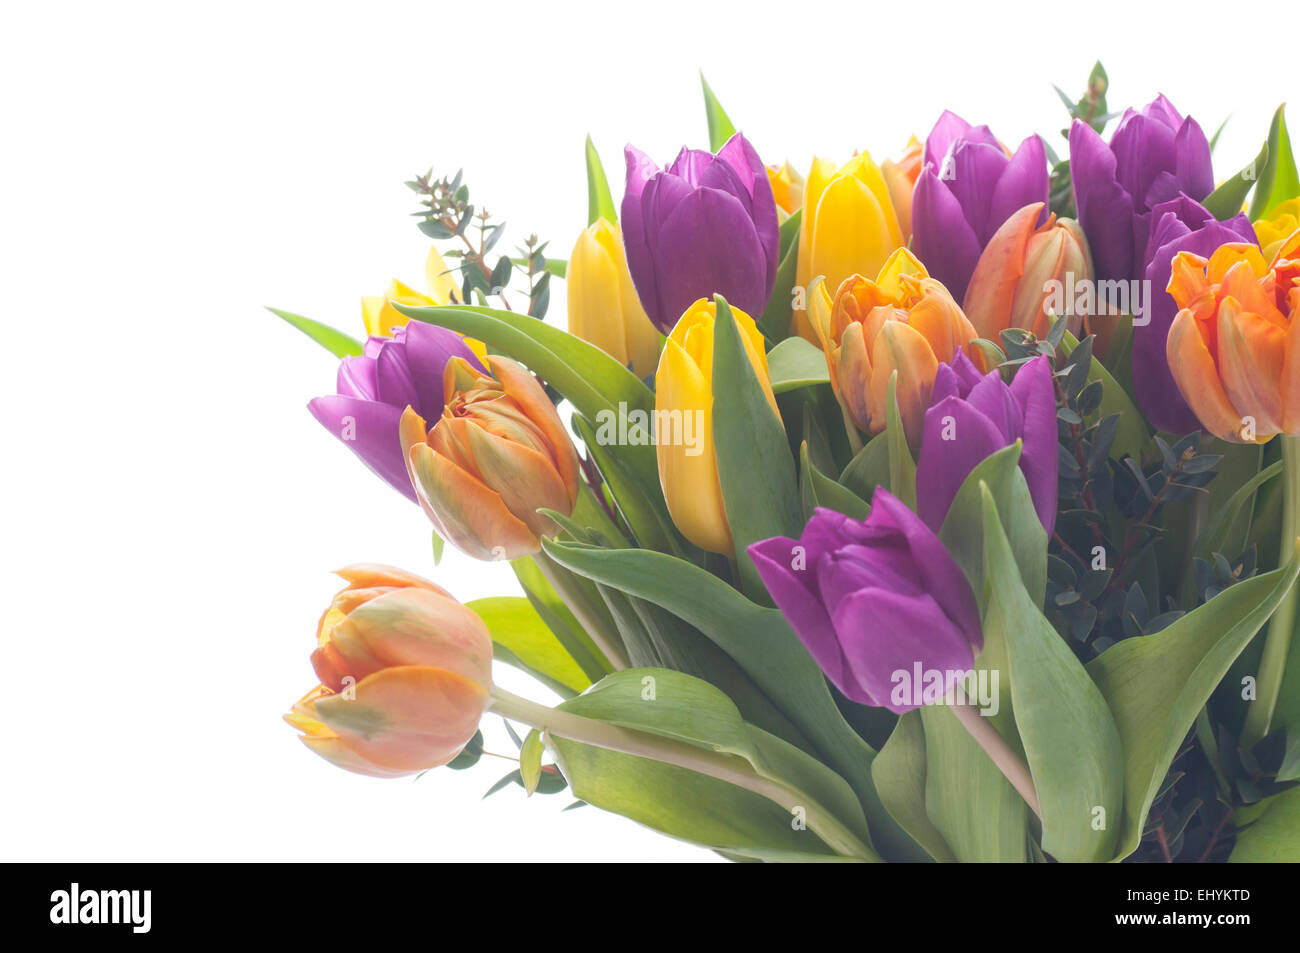 Mixed color tulips on white background. - Stock Image